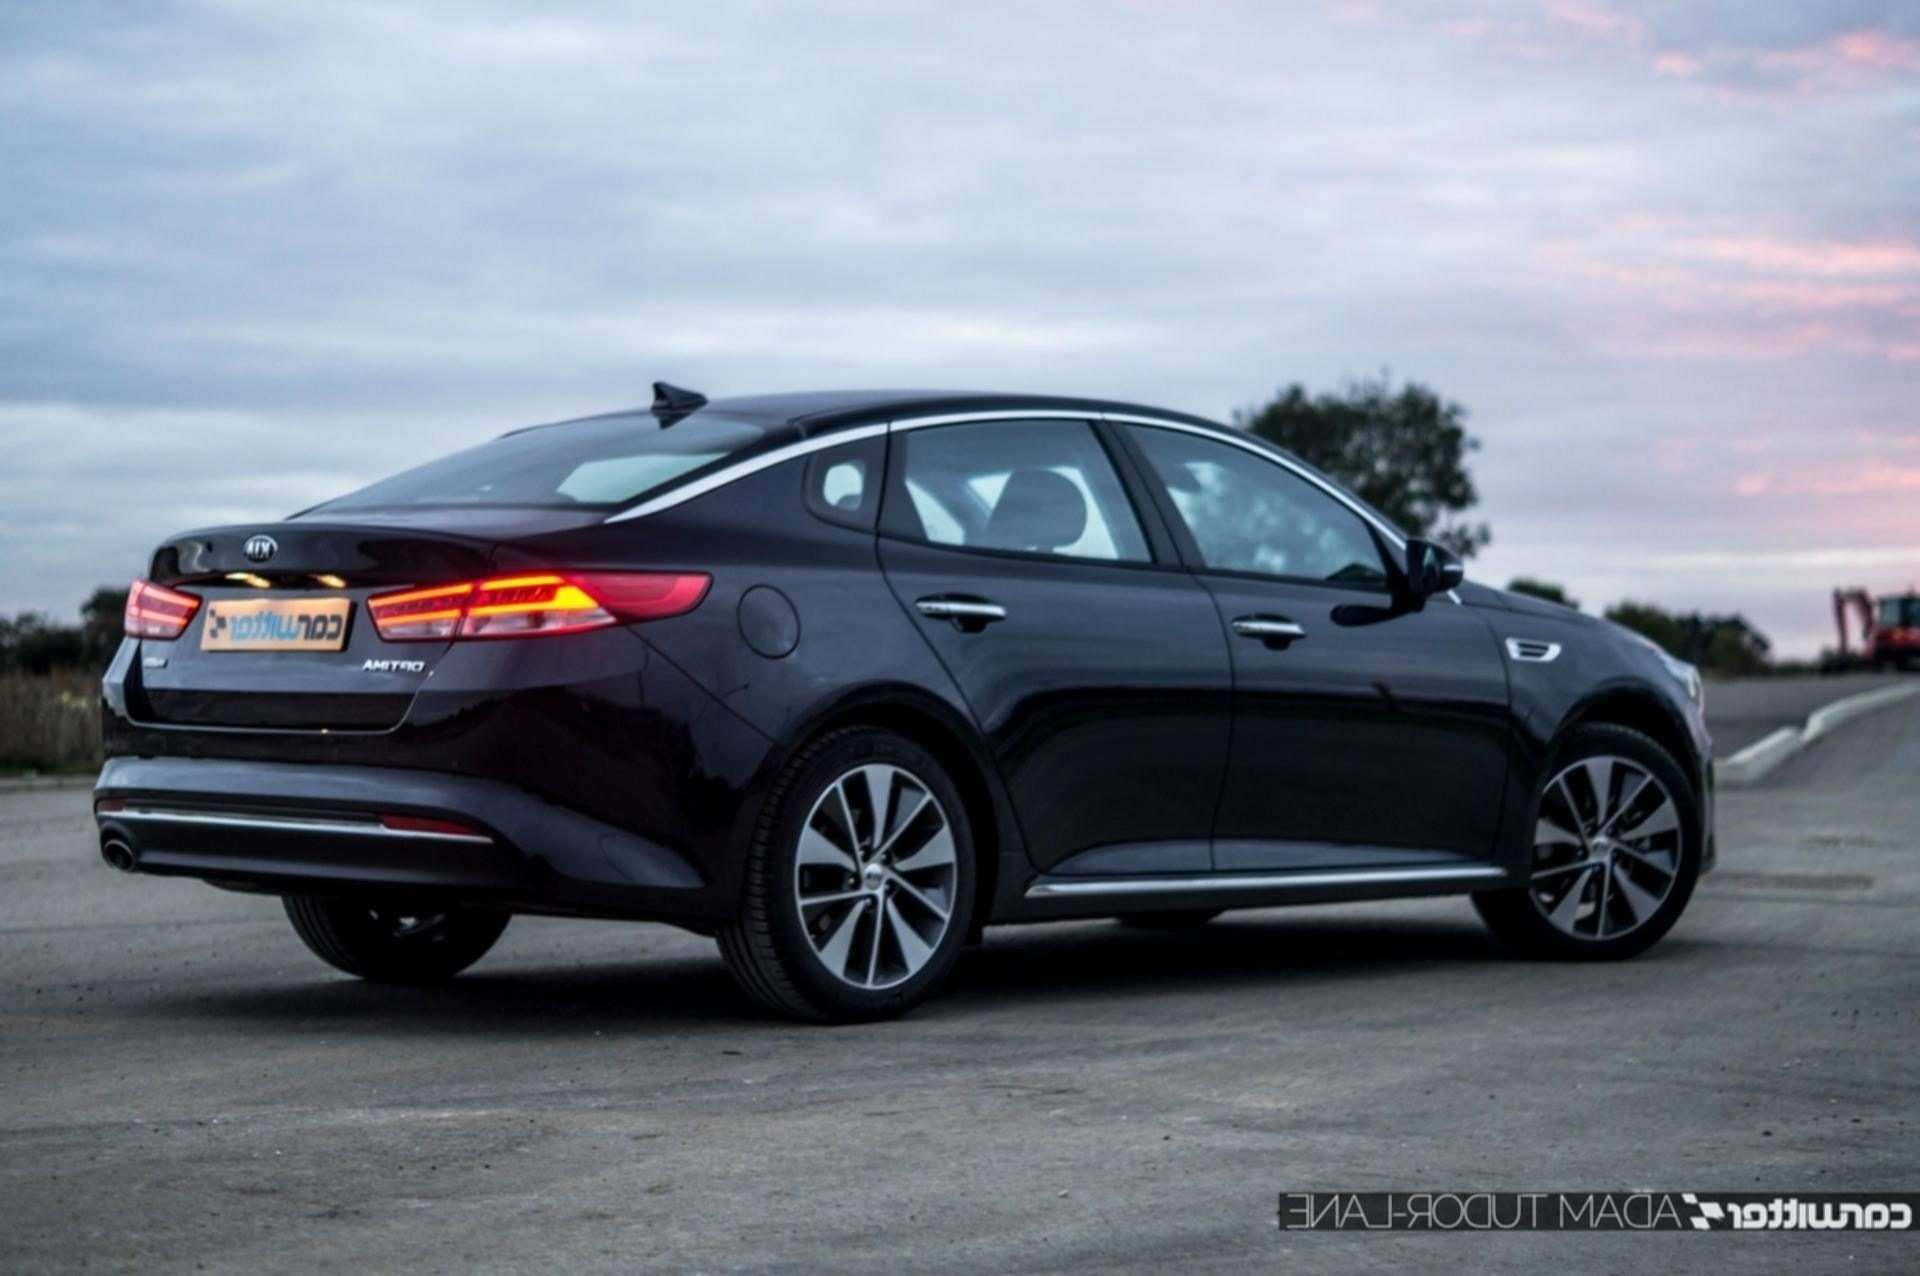 73 The Best 2020 Kia OptimaConcept Photos